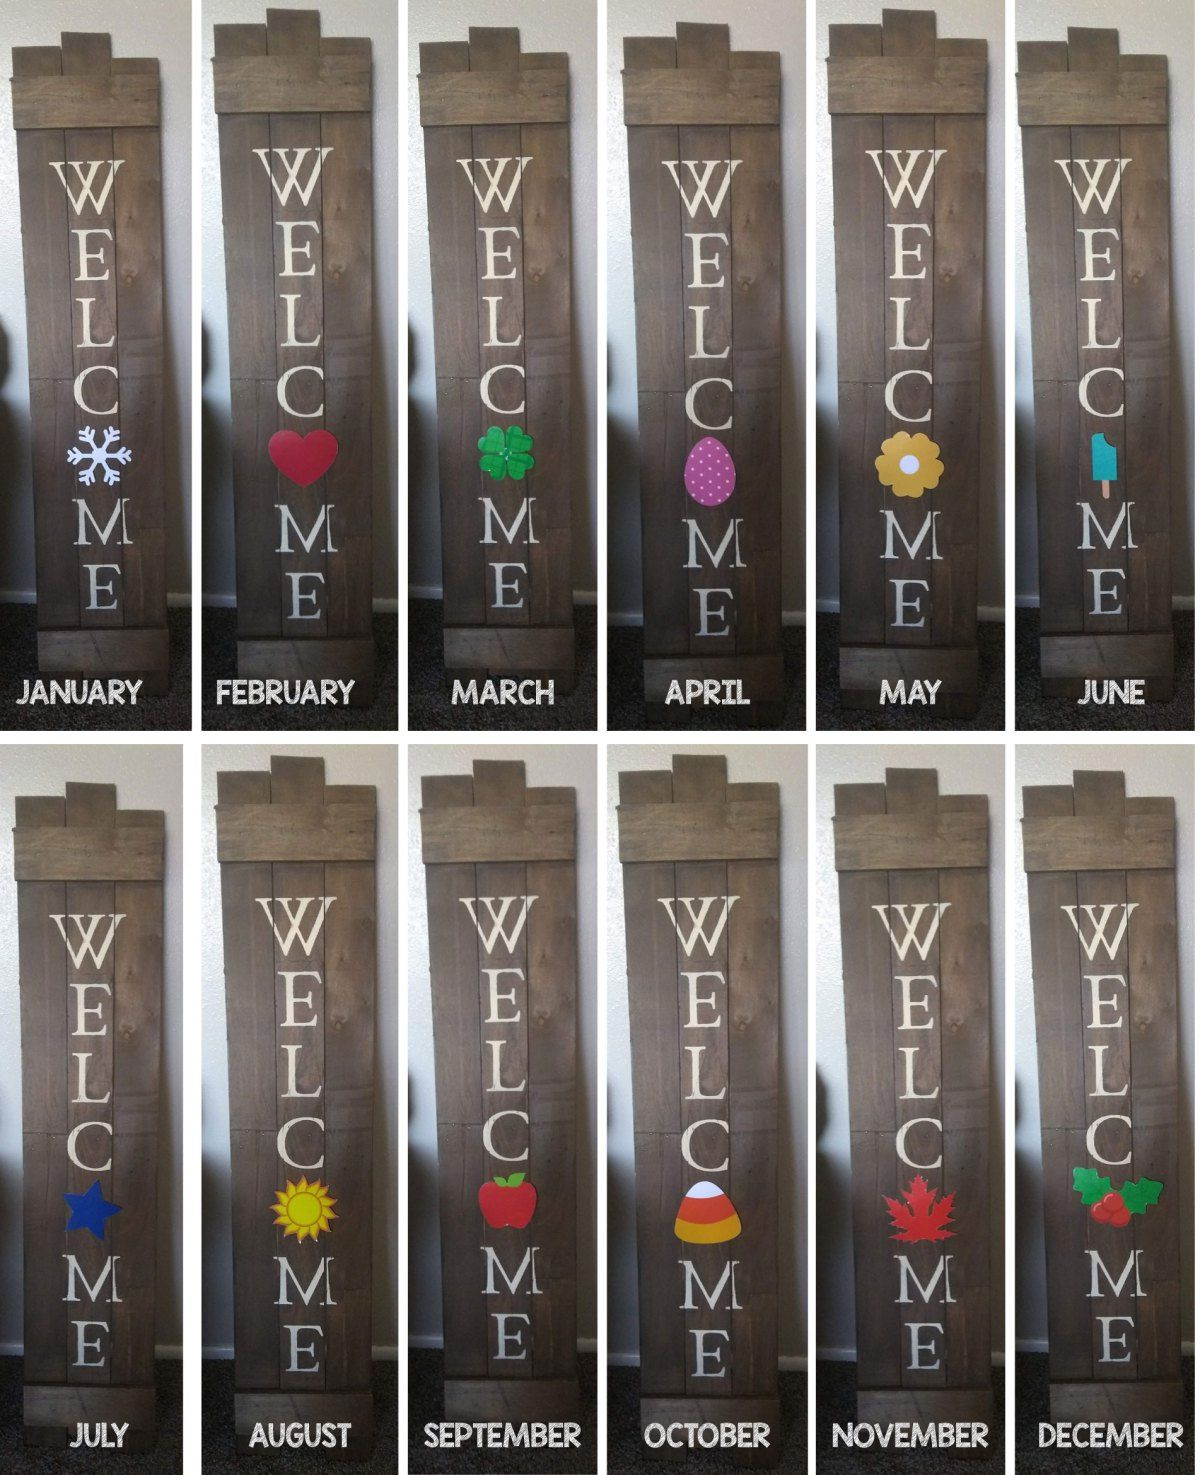 Diy Welcome Sign With Interchangeable Monthly Pictures My Silly Squirts Wine Bottle Diy Crafts Diy Home Decor Projects Monthly Pictures